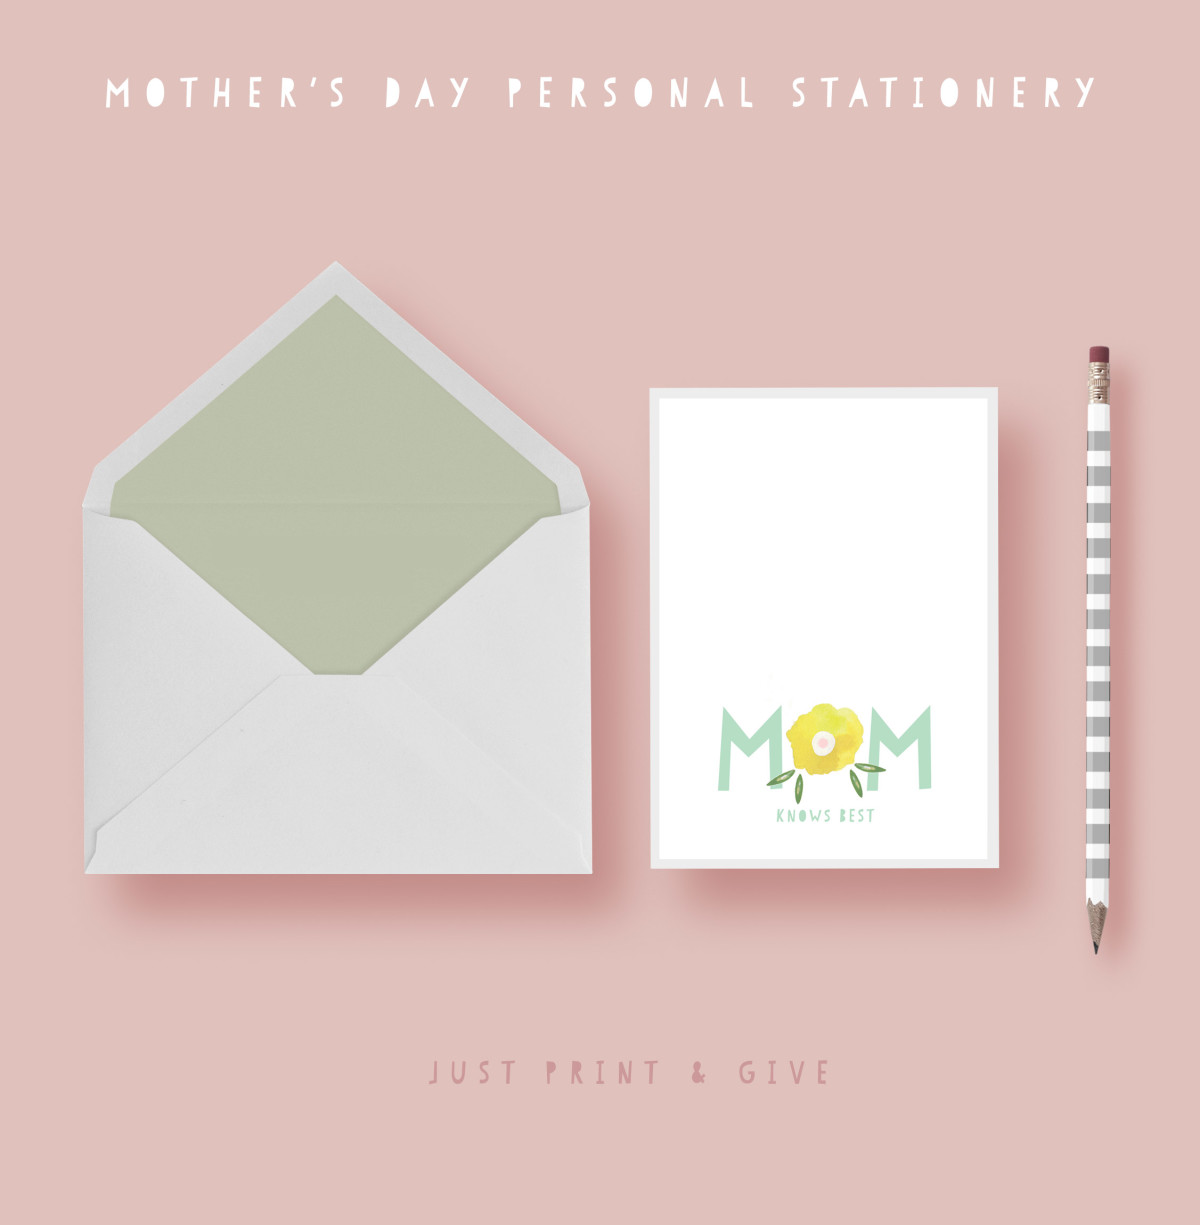 Give mom a special stationery set